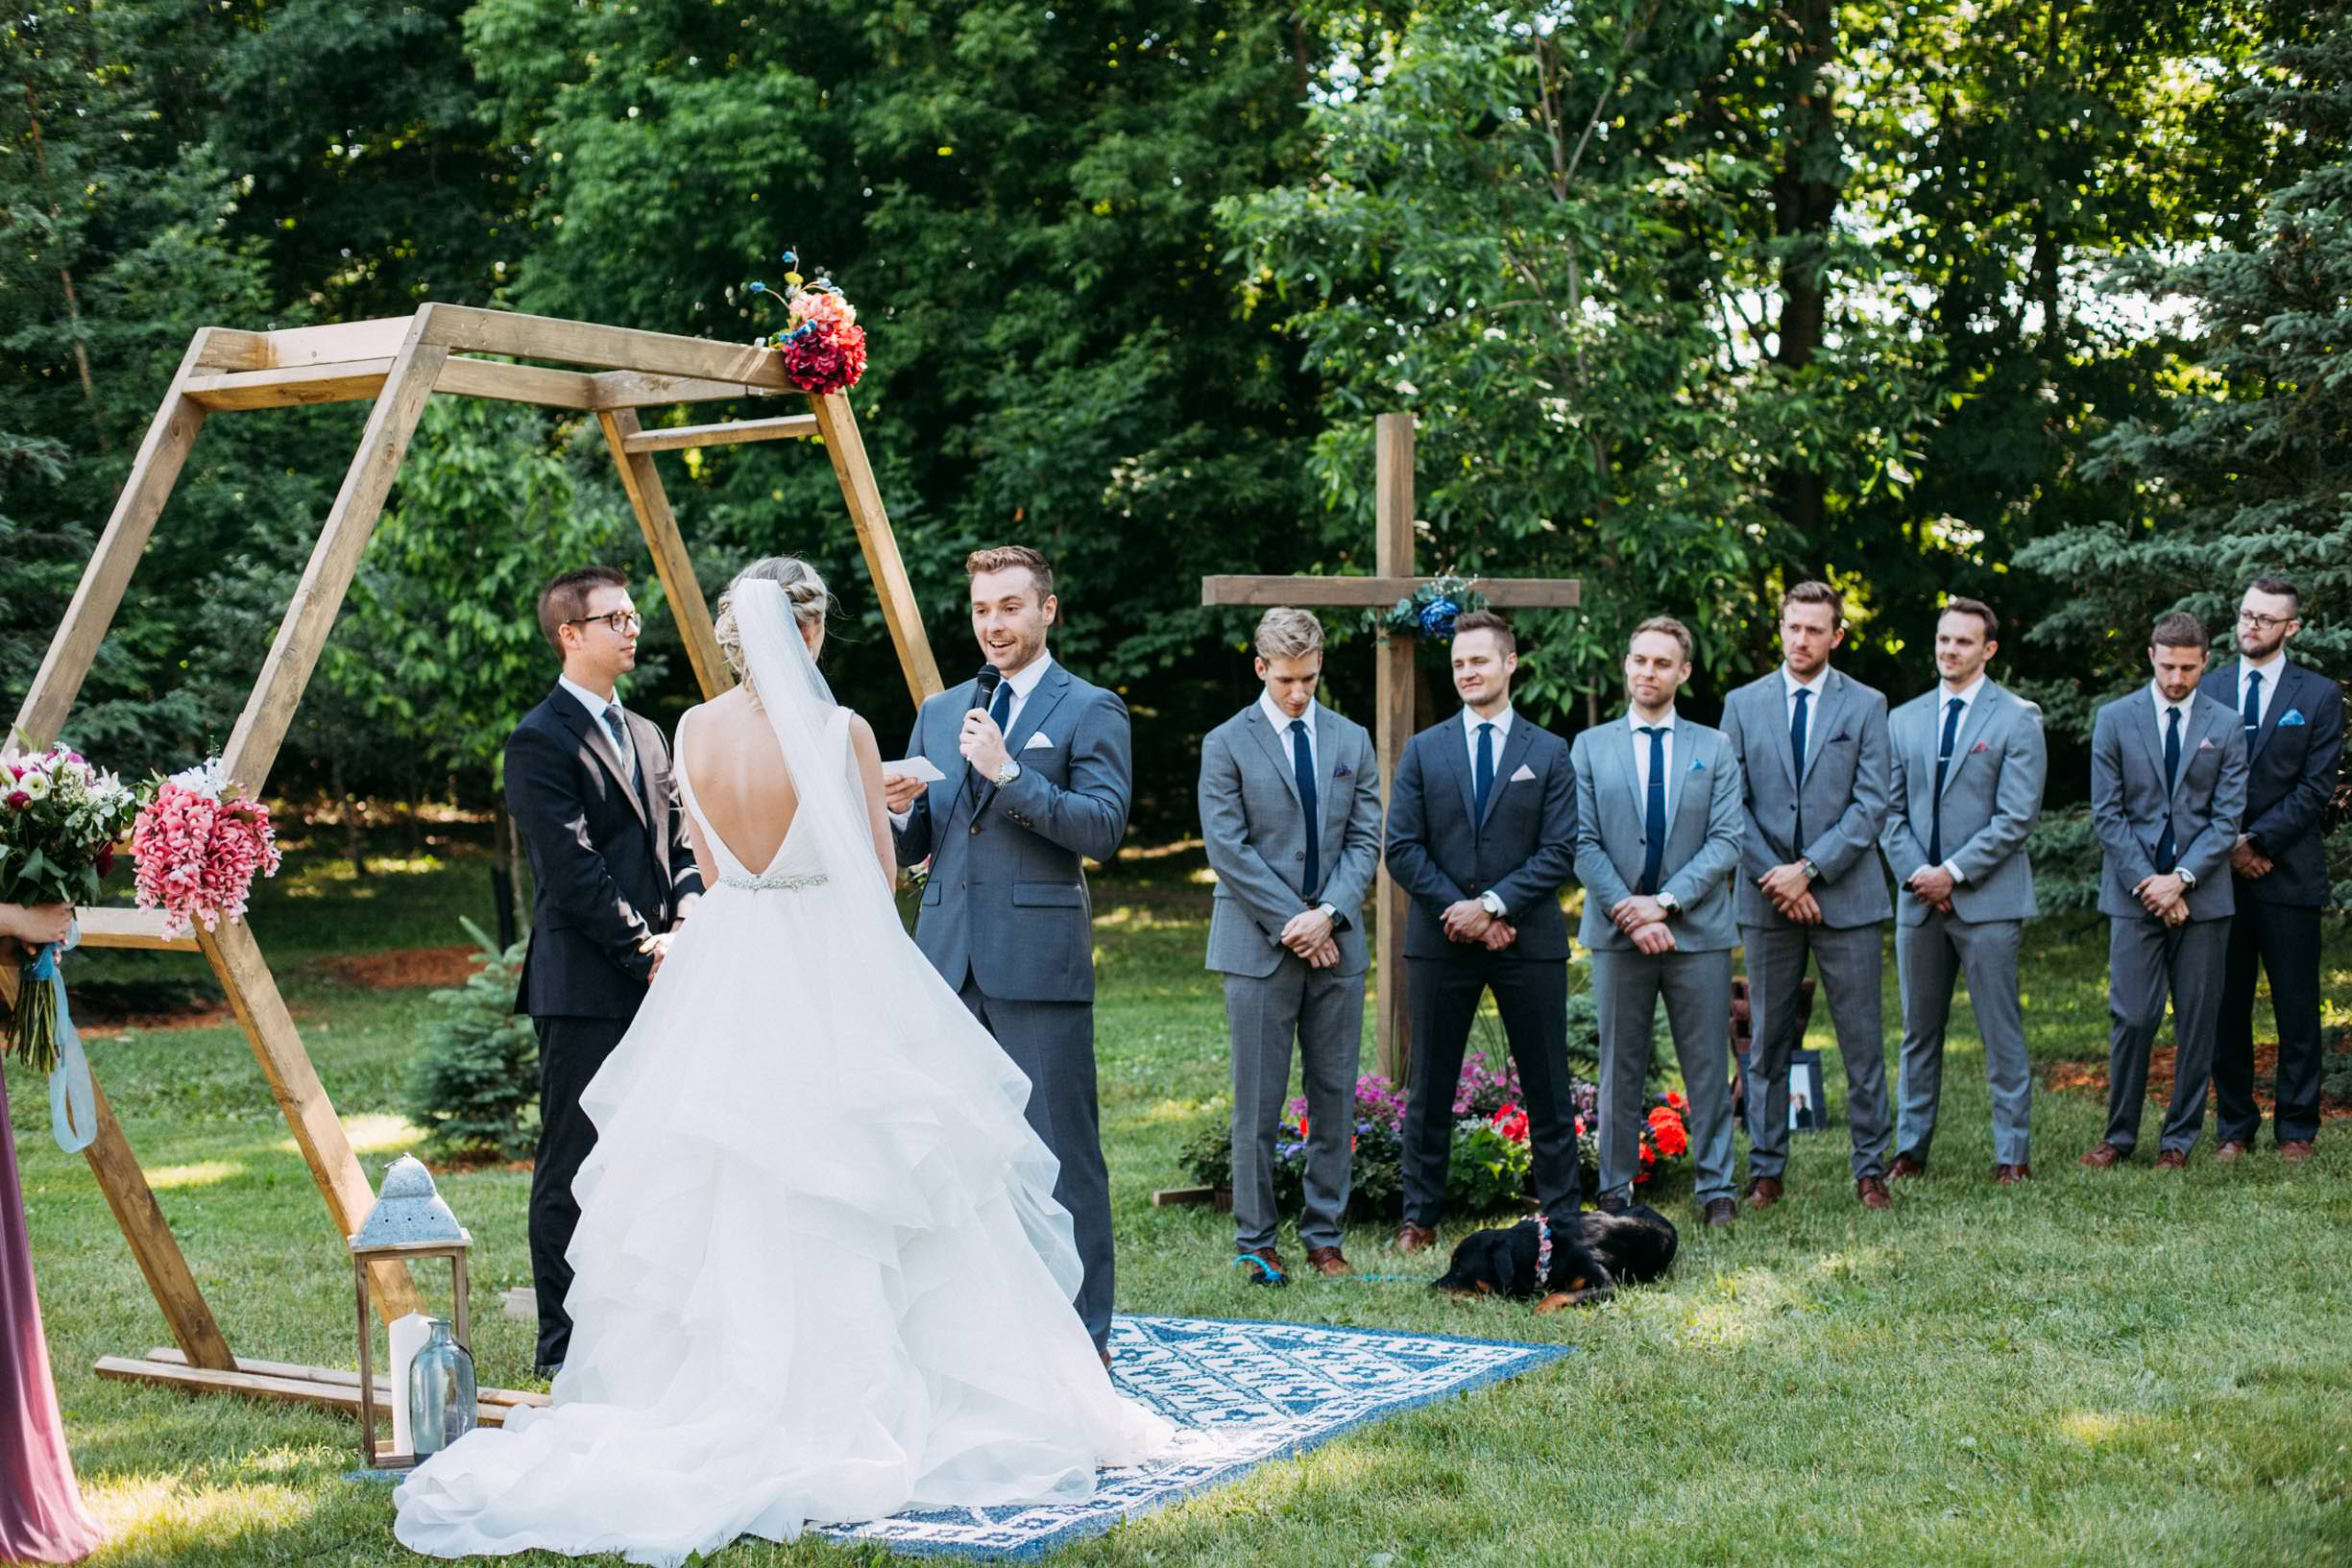 Carley_Trammell_GreenBay_Backyard_Wedding_Blog-68.jpg